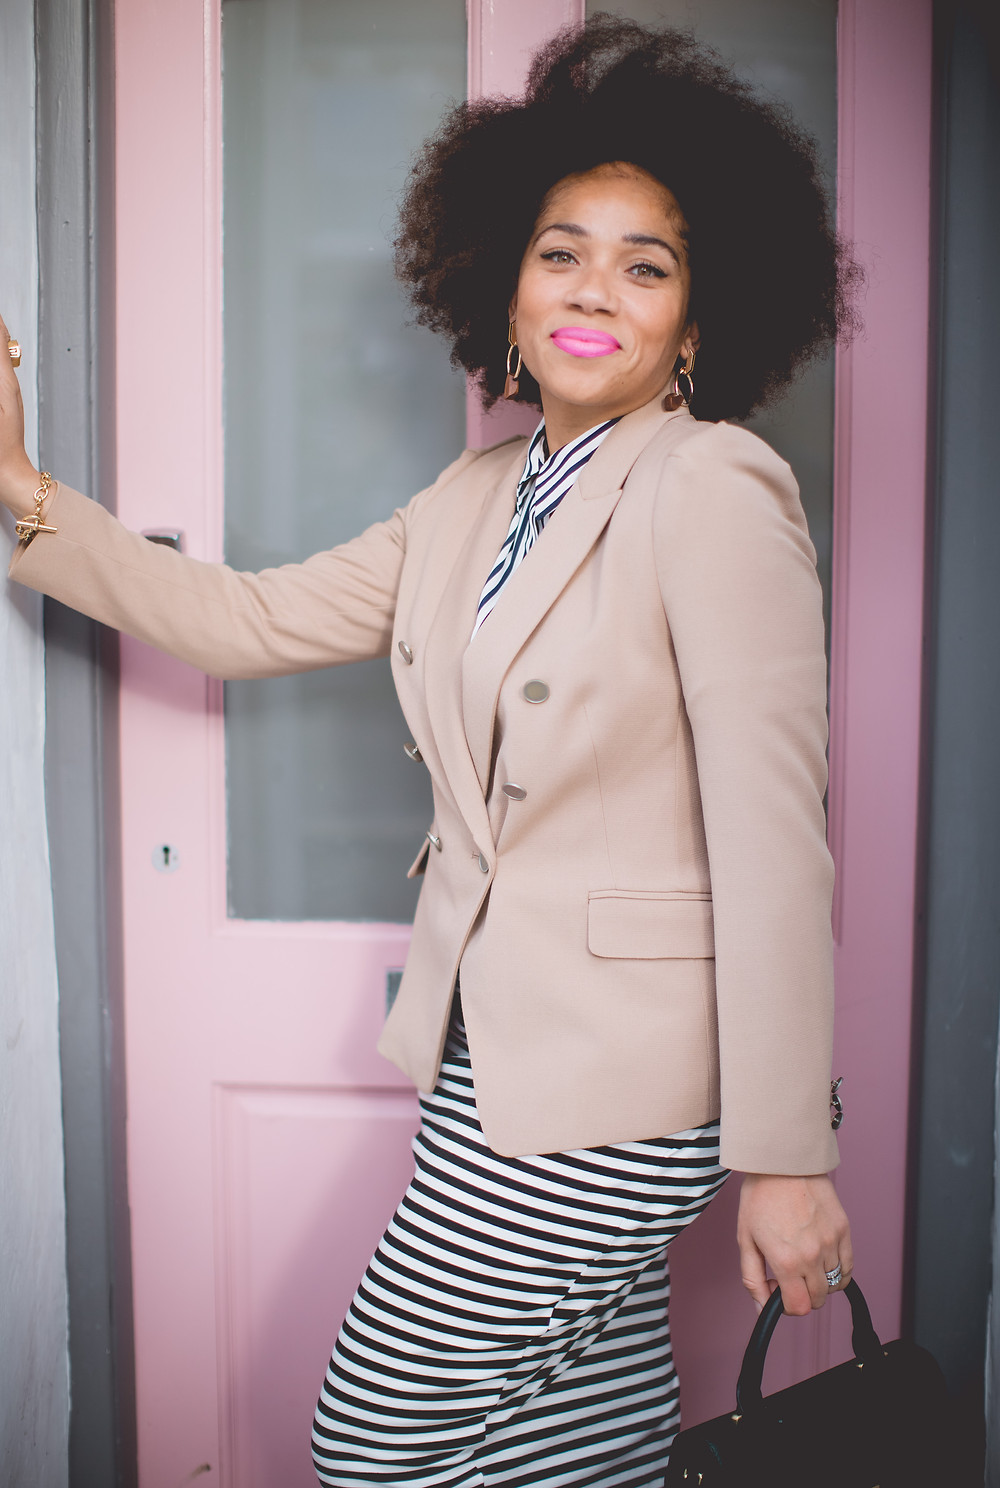 Nat from Style Me Sunday wearing M&S workwear outfit